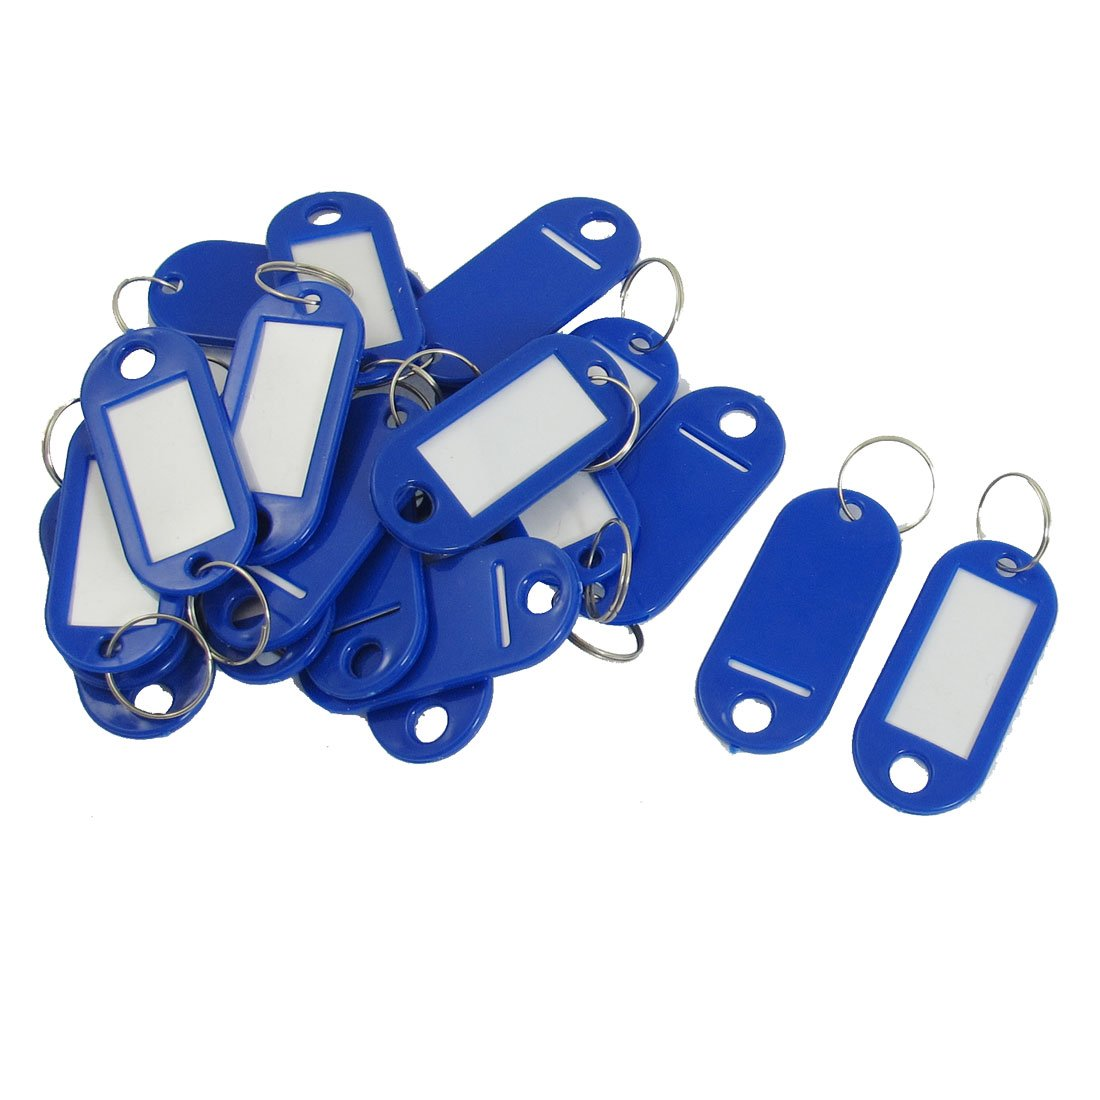 20 Pcs Key ID Label Tags Split Ring Keyring Keychain Blue Key Fobs ID Tags